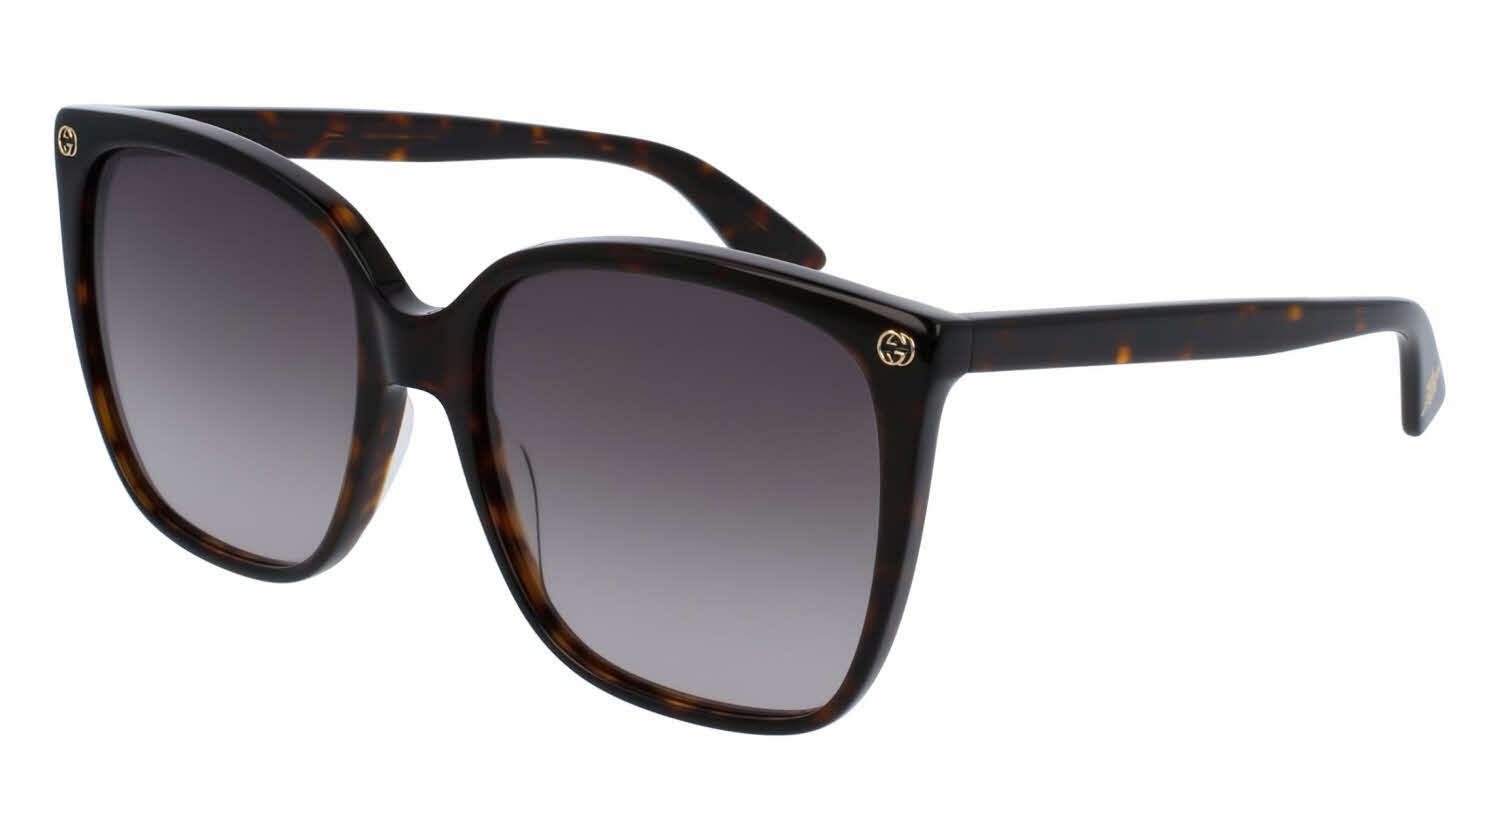 gucci sunglasses. gucci gg0022s sunglasses c